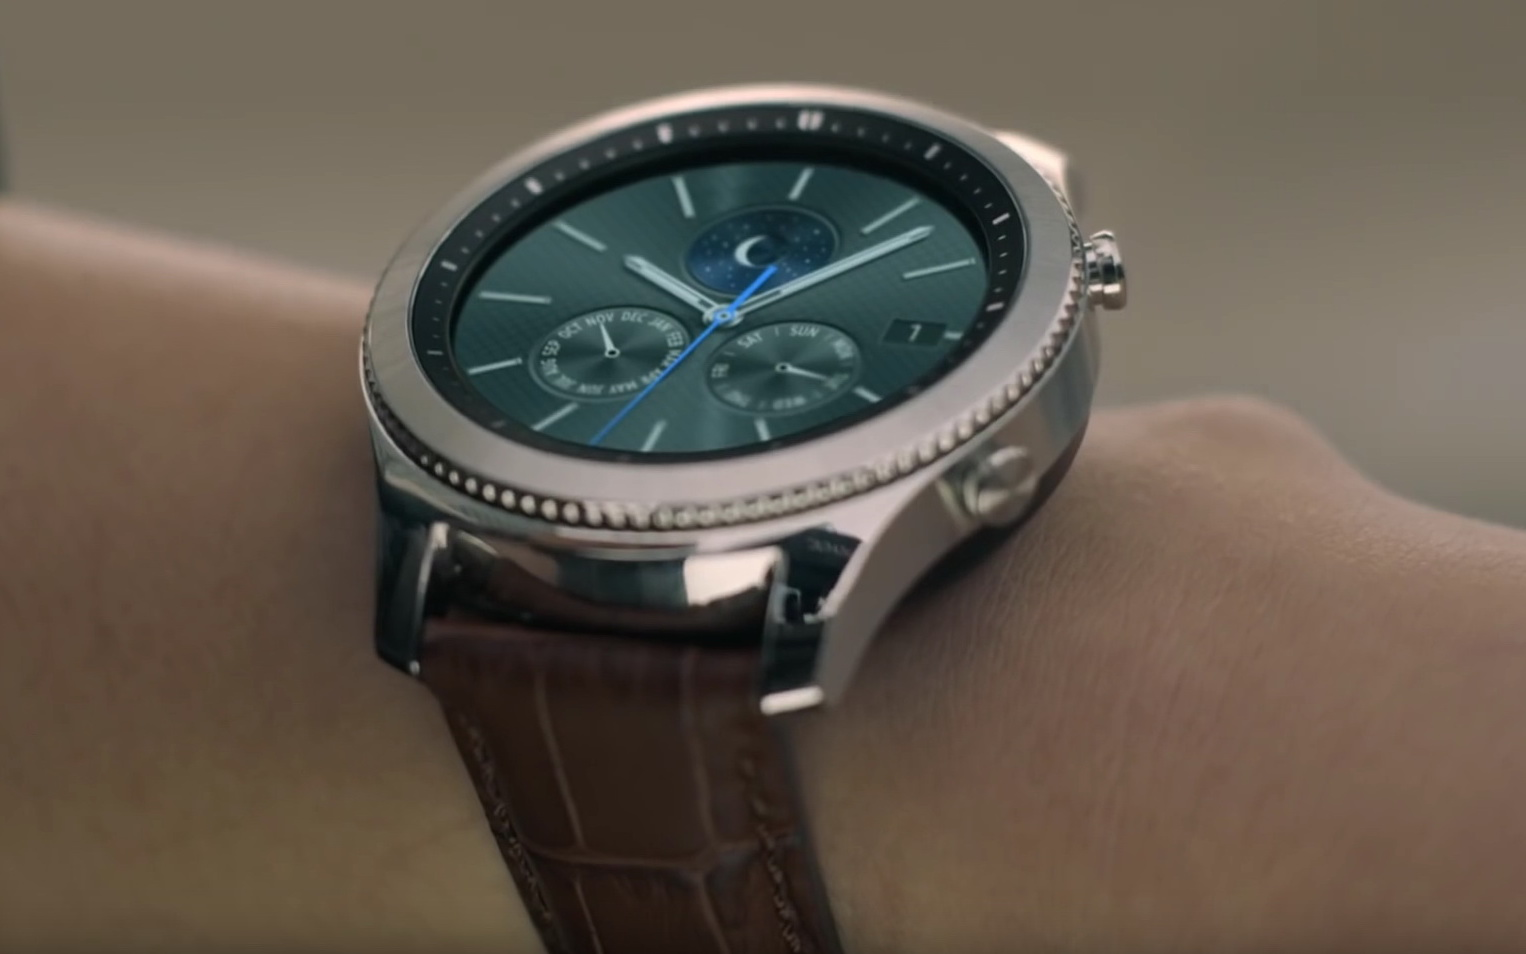 Samsung Gear S3 gets major update